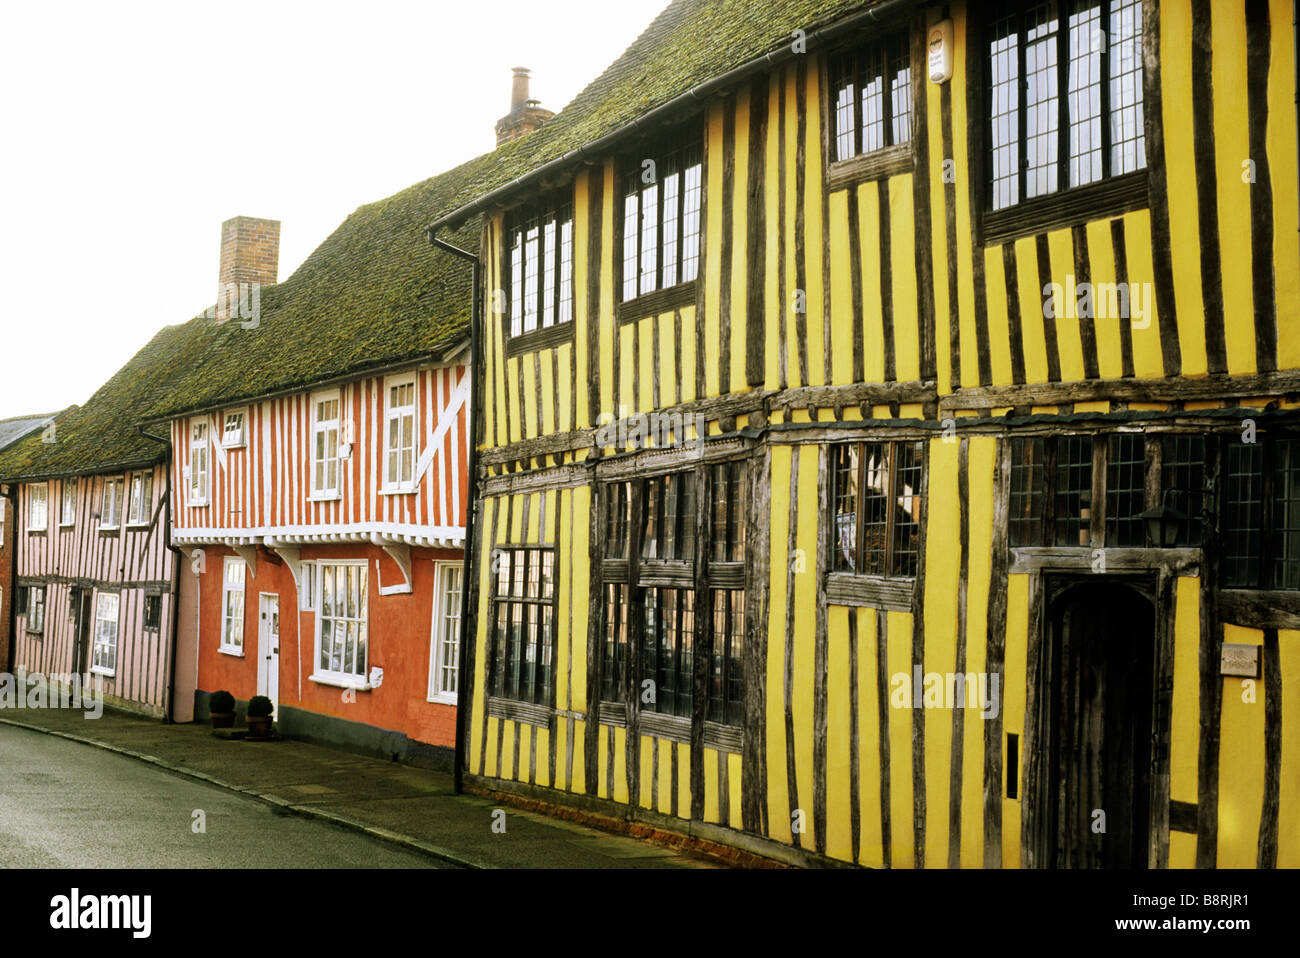 Colour washed timbered houses house Lavenham Suffolk water street Tudor listed buildings wool town English medieval - Stock Image